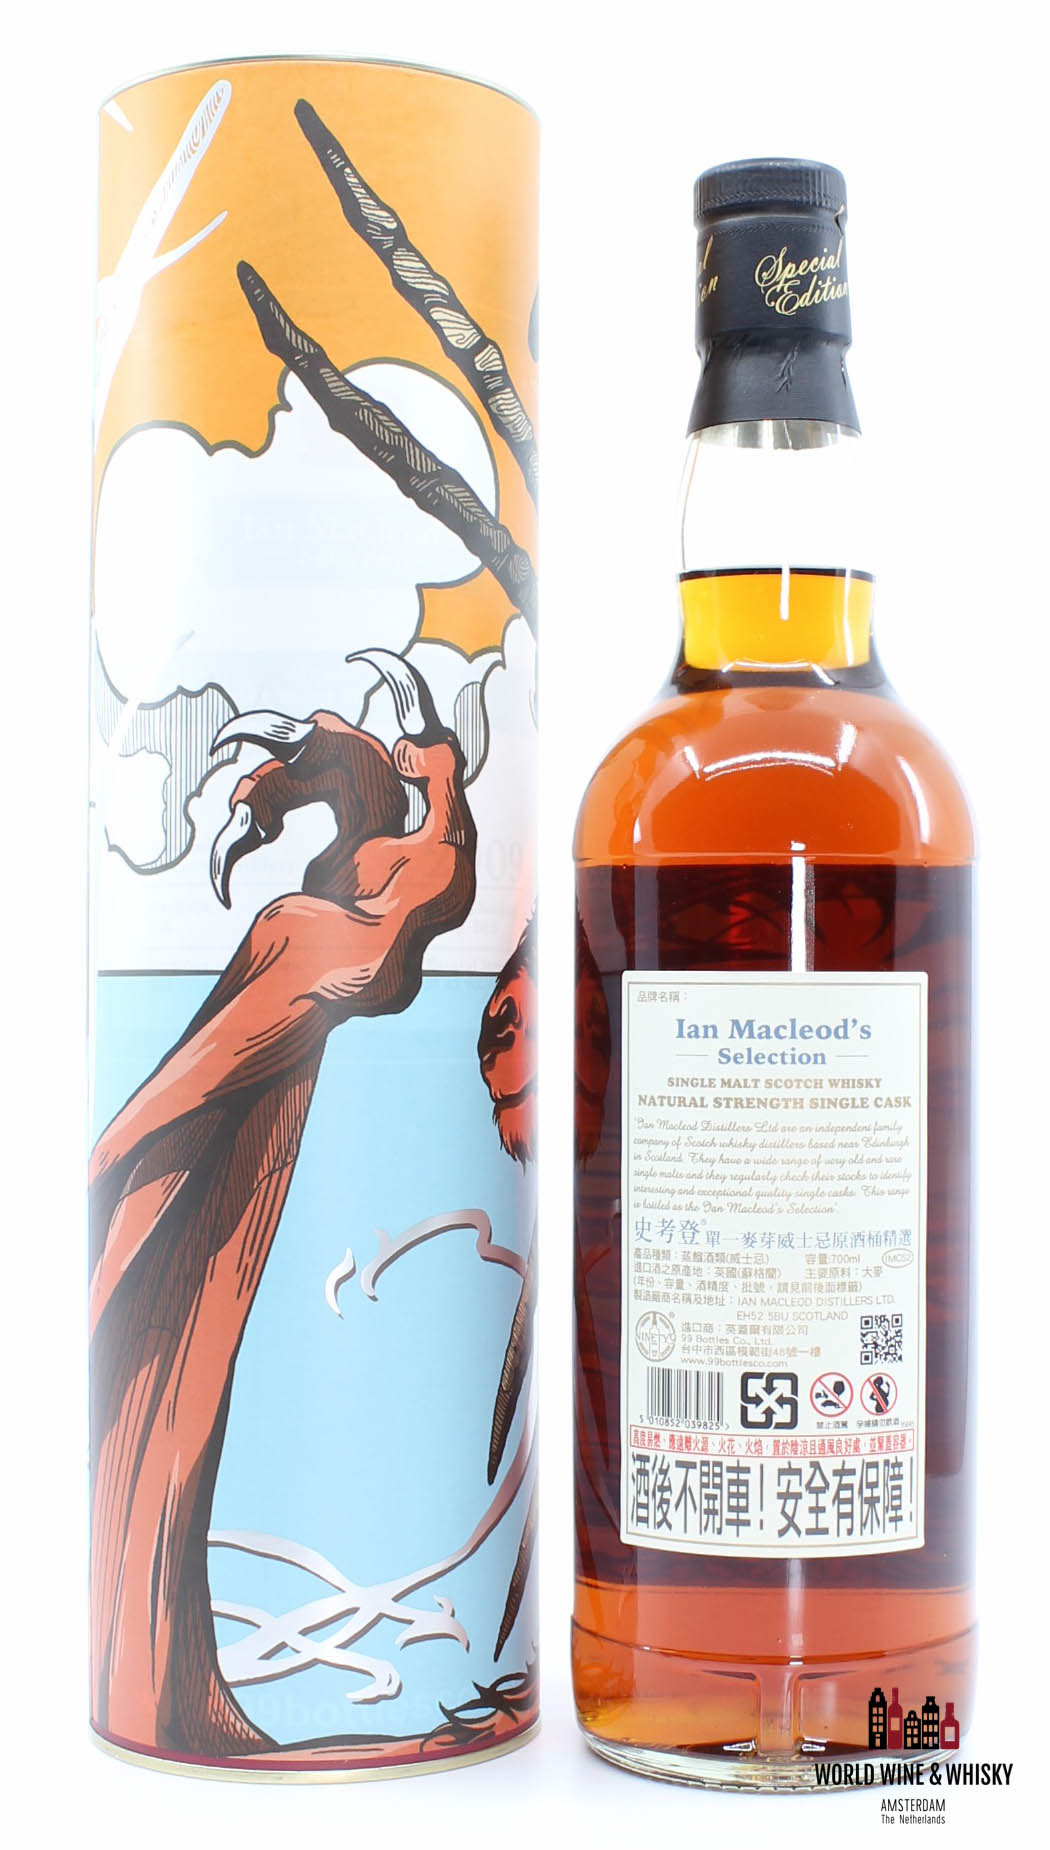 Dalmore Dalmore 2009 2018 - Ian MacLeod's Selection - Cask 165 - Connoisseur Society 58.4% (1 of 285)